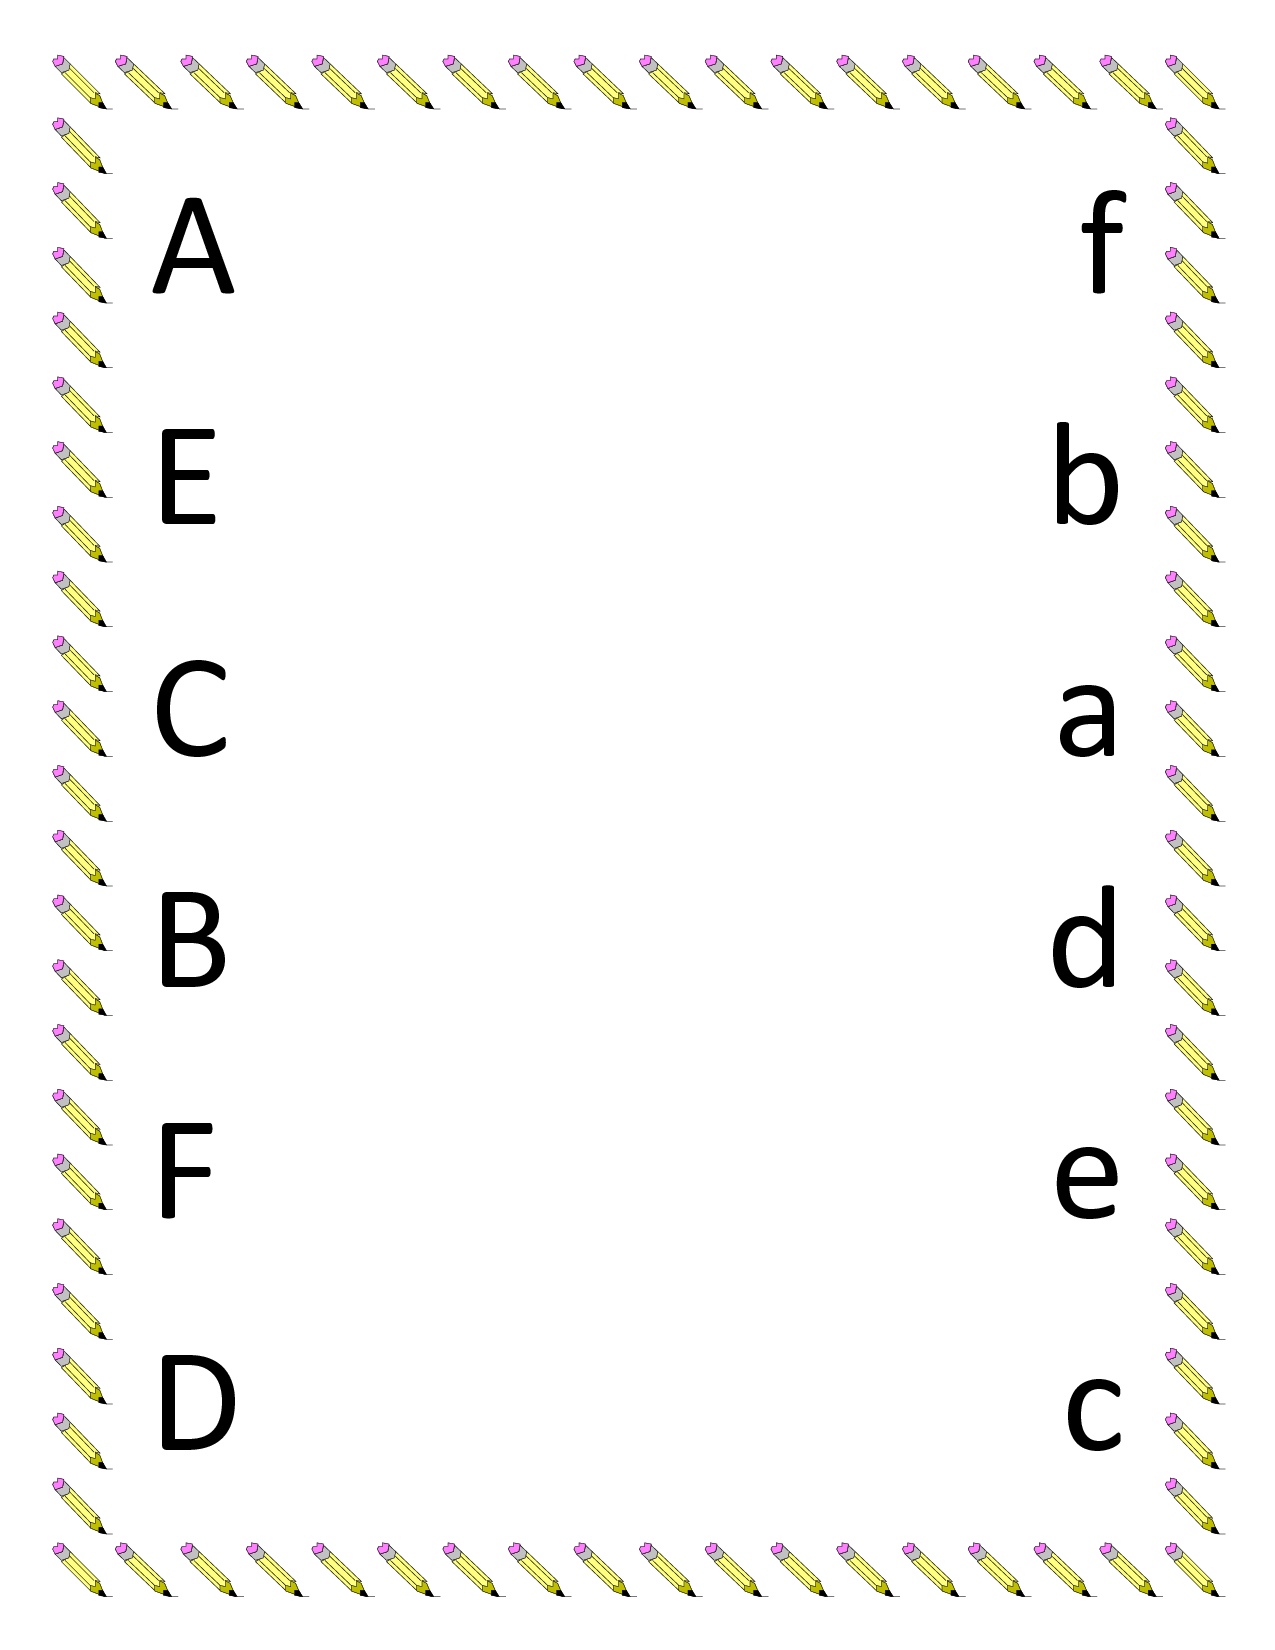 Worksheets Kindergarten Matching Worksheets kindergarten worksheets preschool printables for image detail matching upper lowercase letter a f